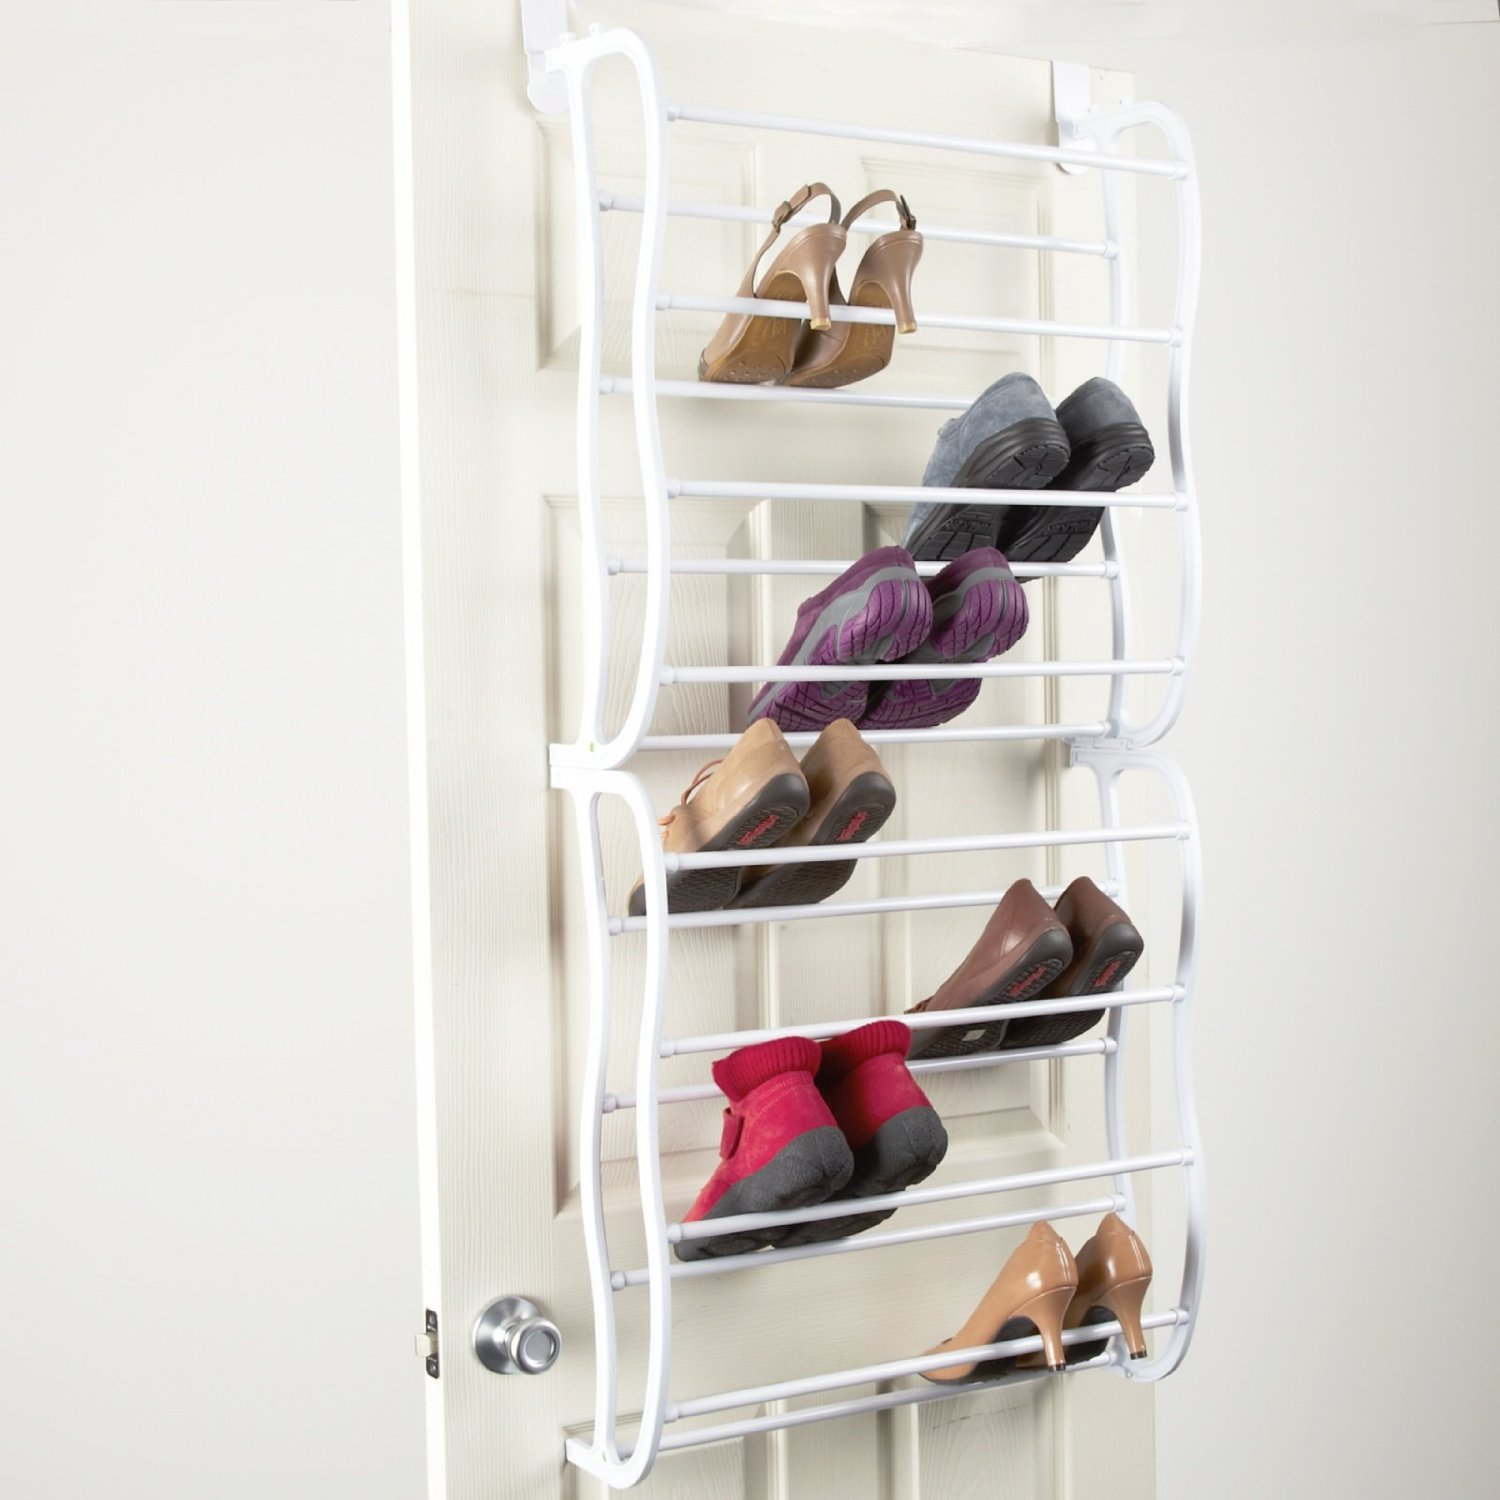 Photos of Innovative Shoe Racks For Closets Design And Ideas Image Of Door. toenail wall mounted shoe racks for closets